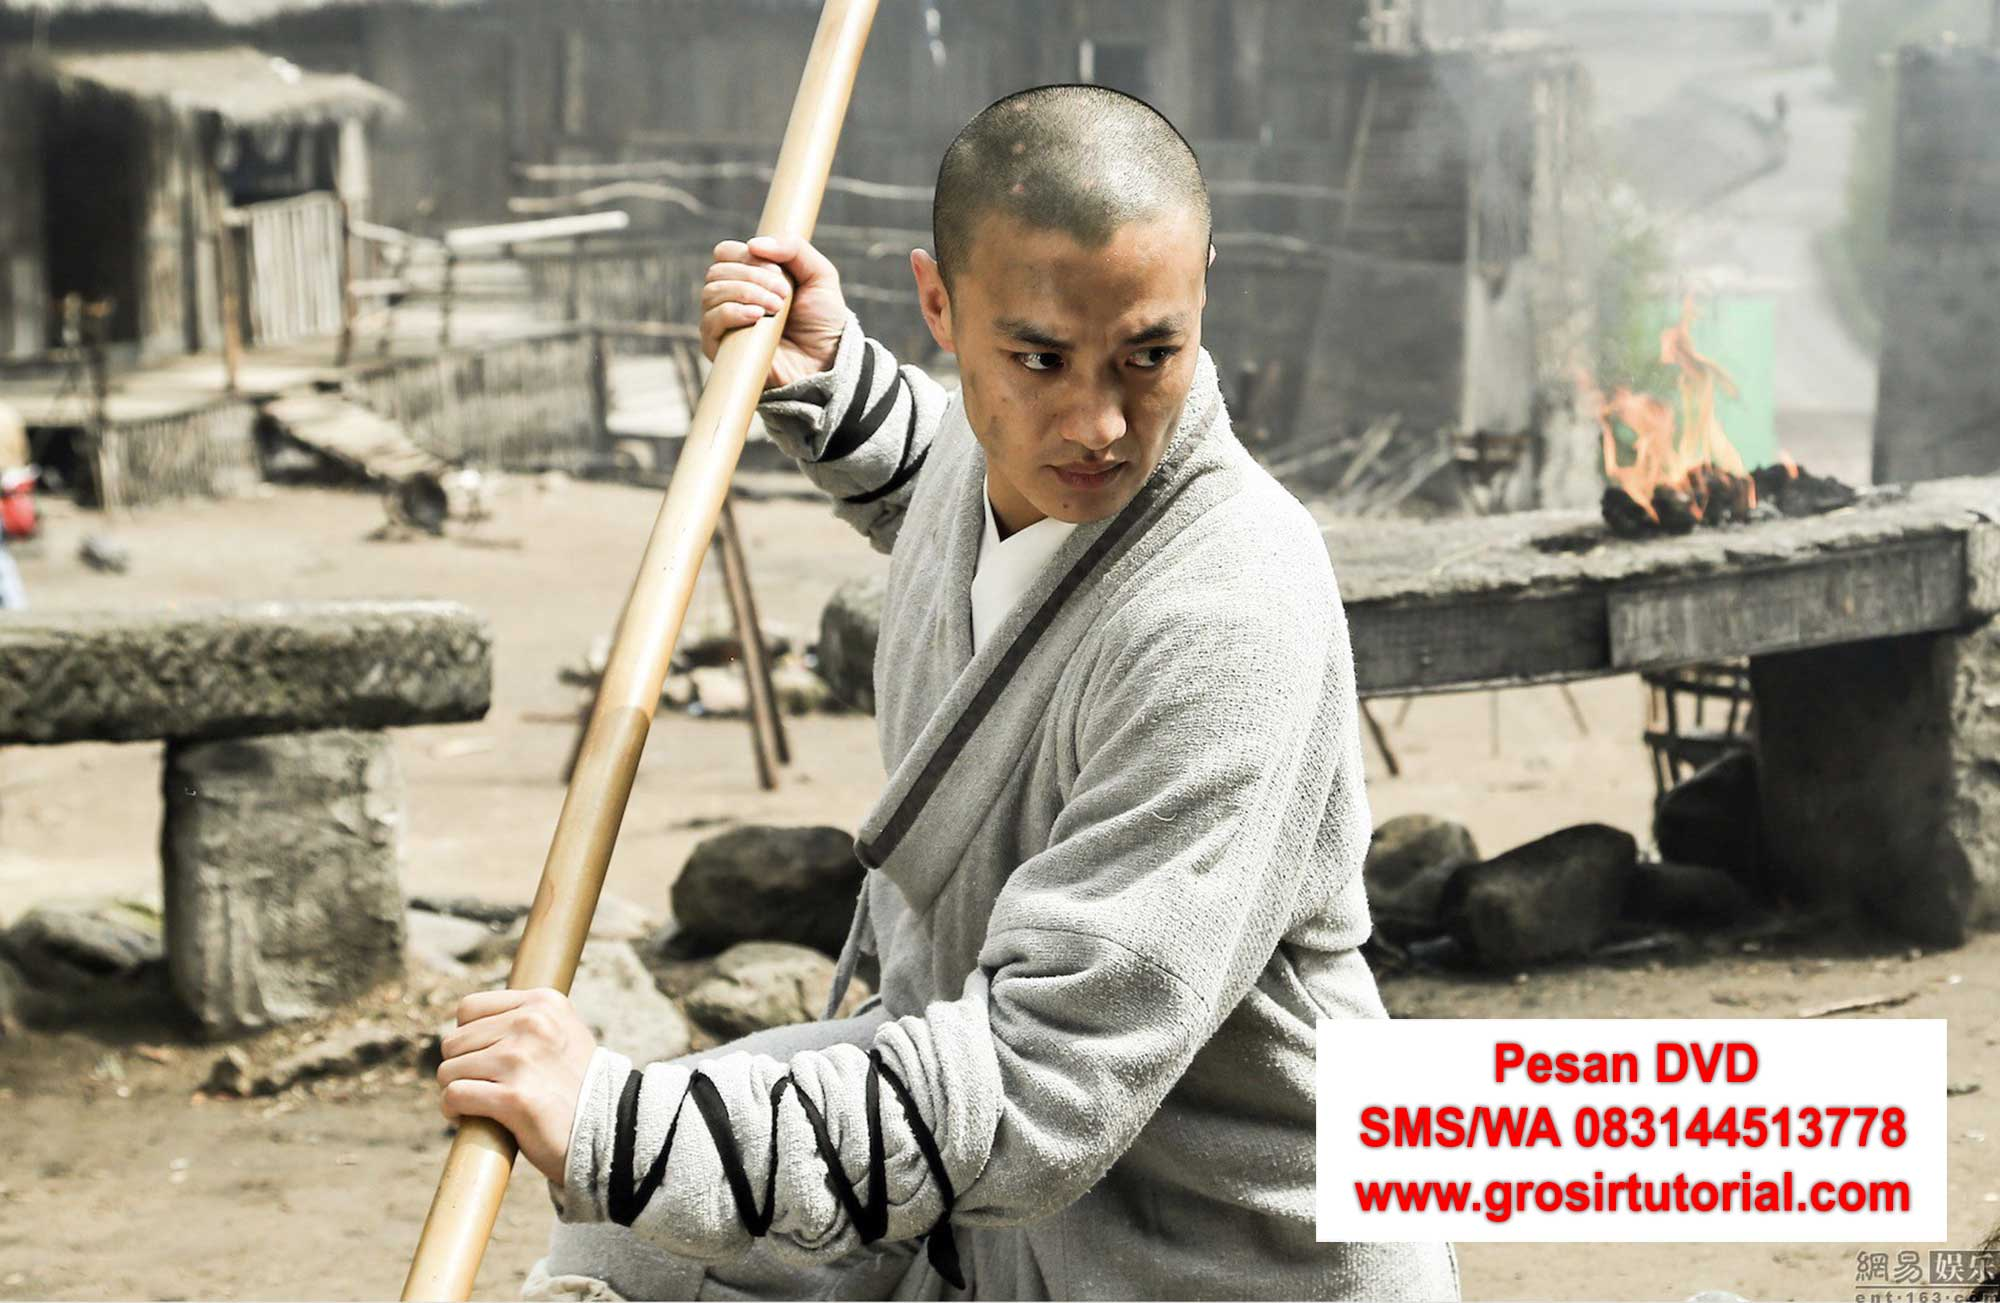 beli-DVD-mandarin-The-Great-Shaolin